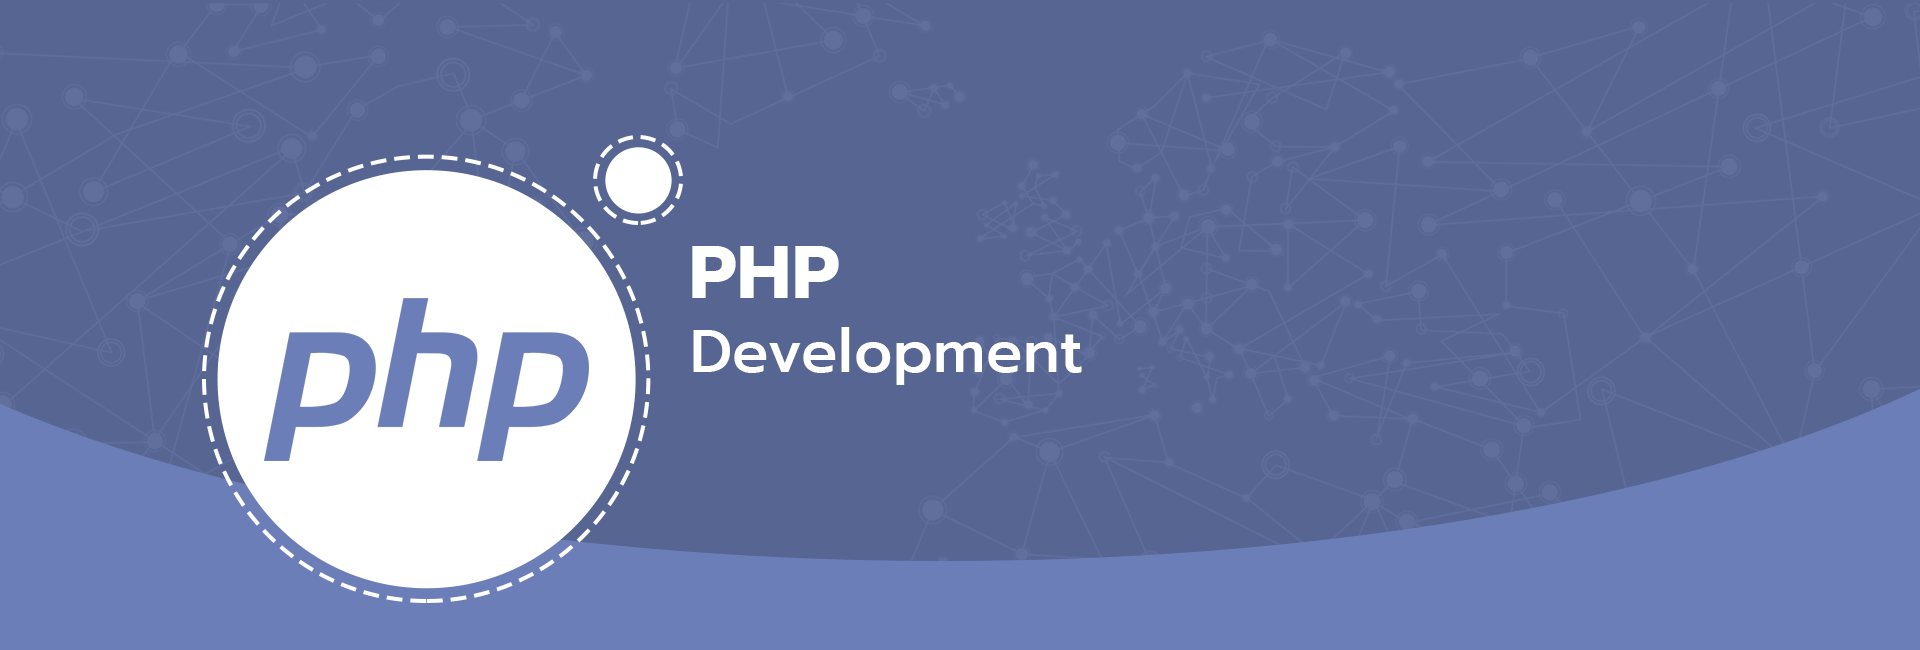 Image result for php development company images hd